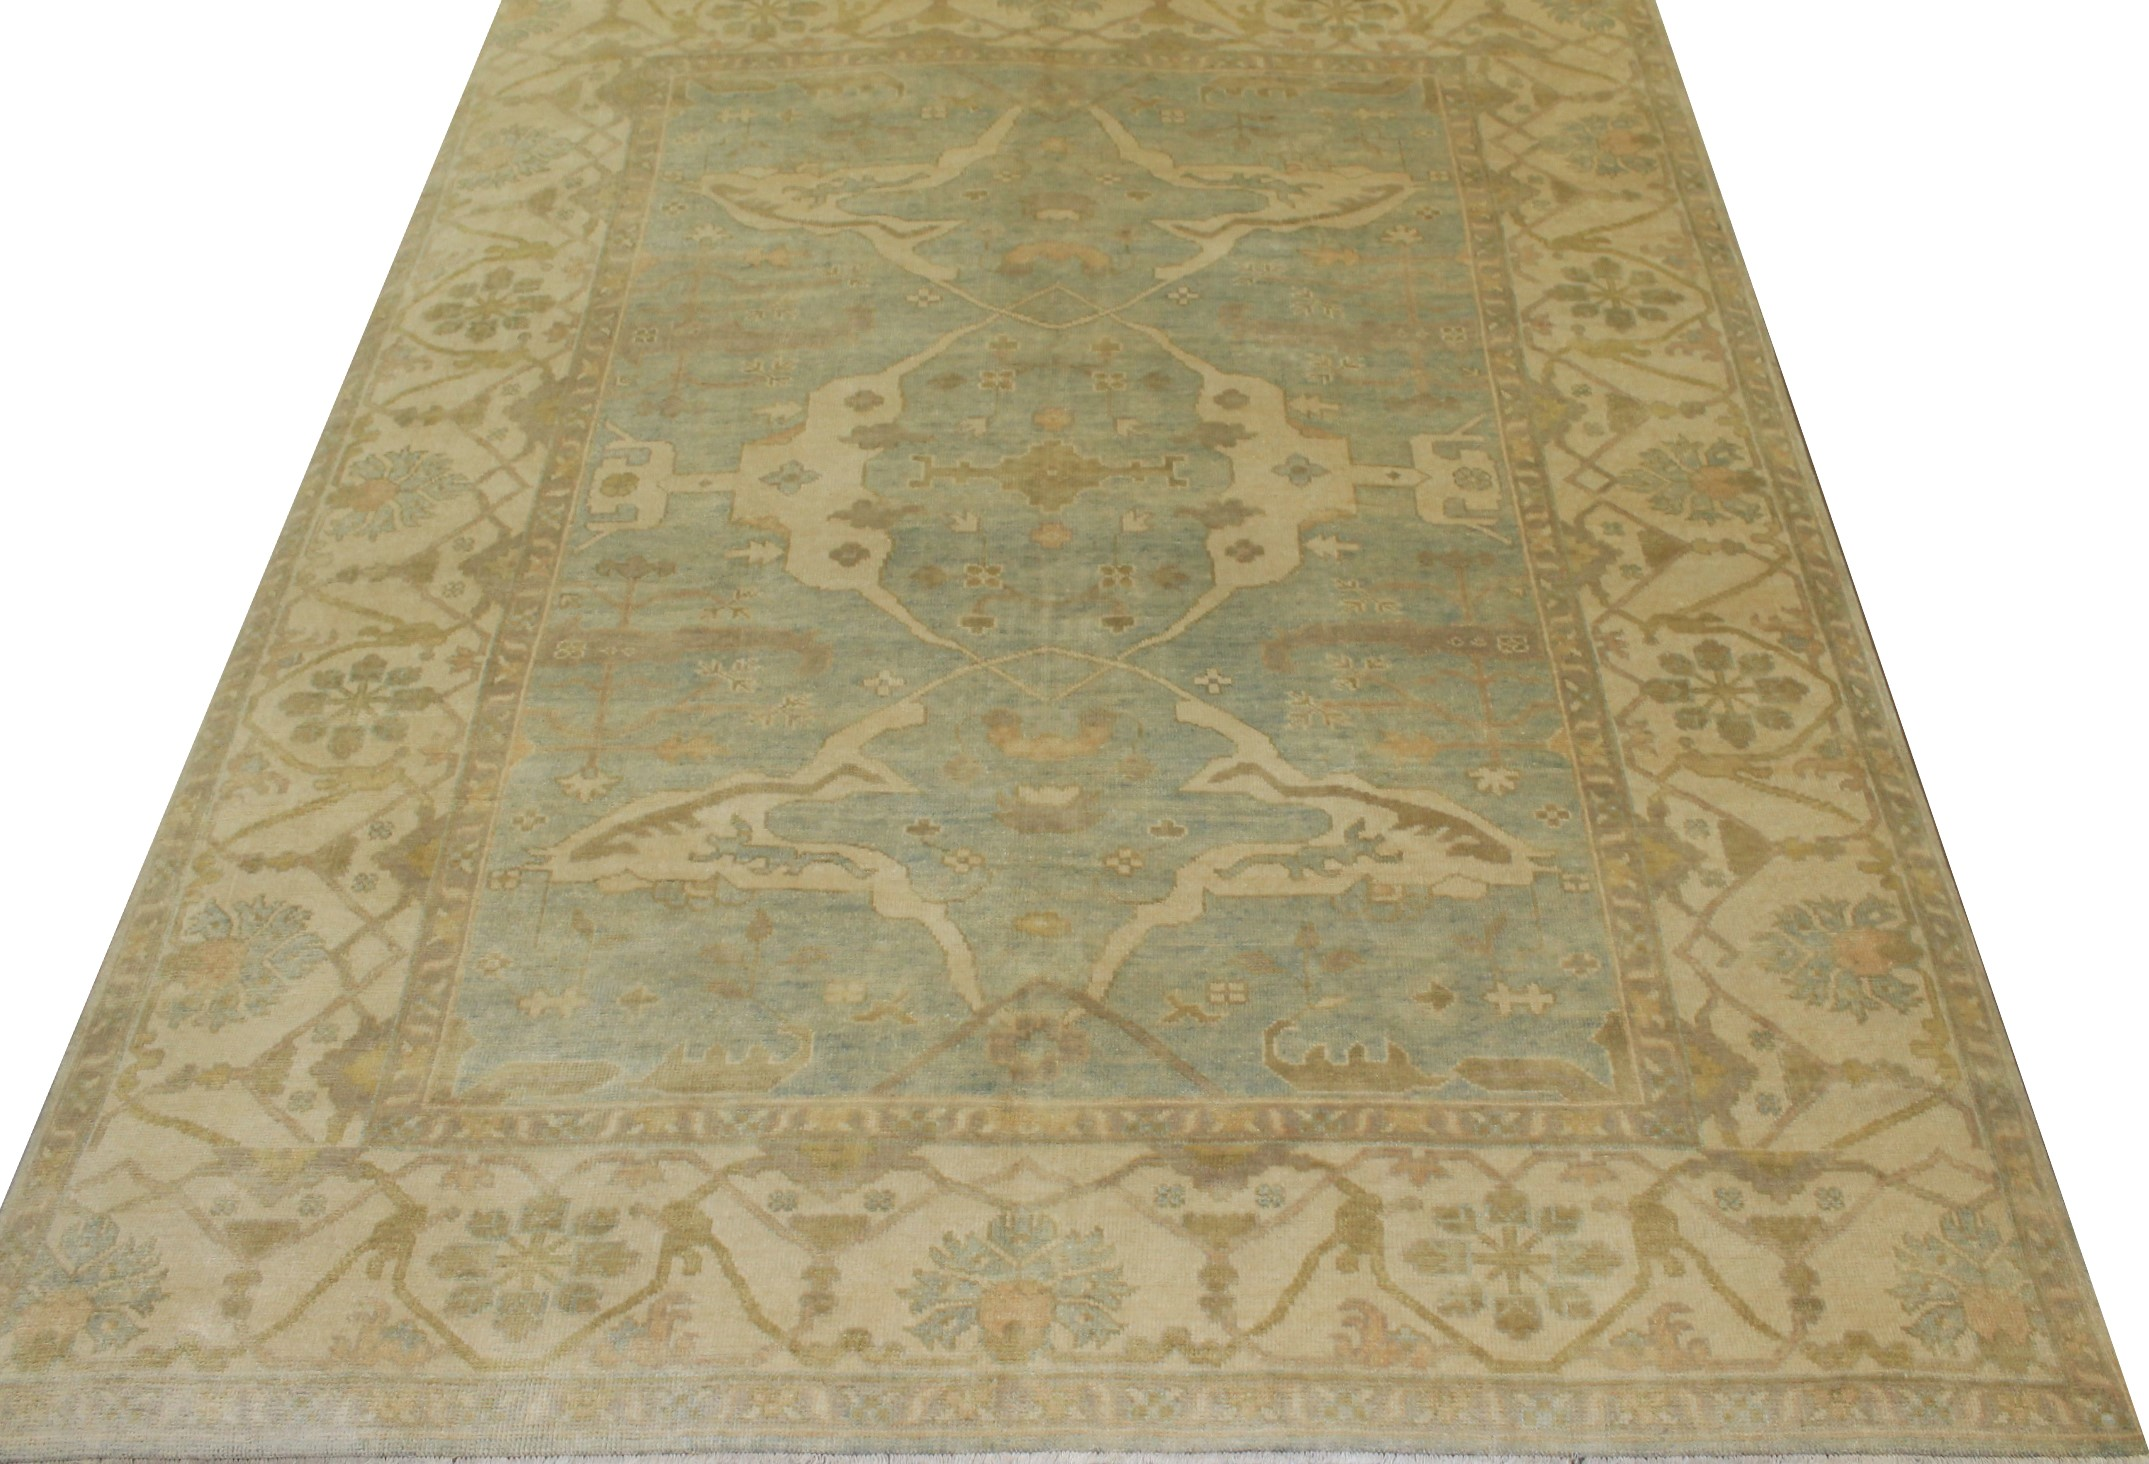 8x10 Oushak Hand Knotted Wool Area Rug - MR14790